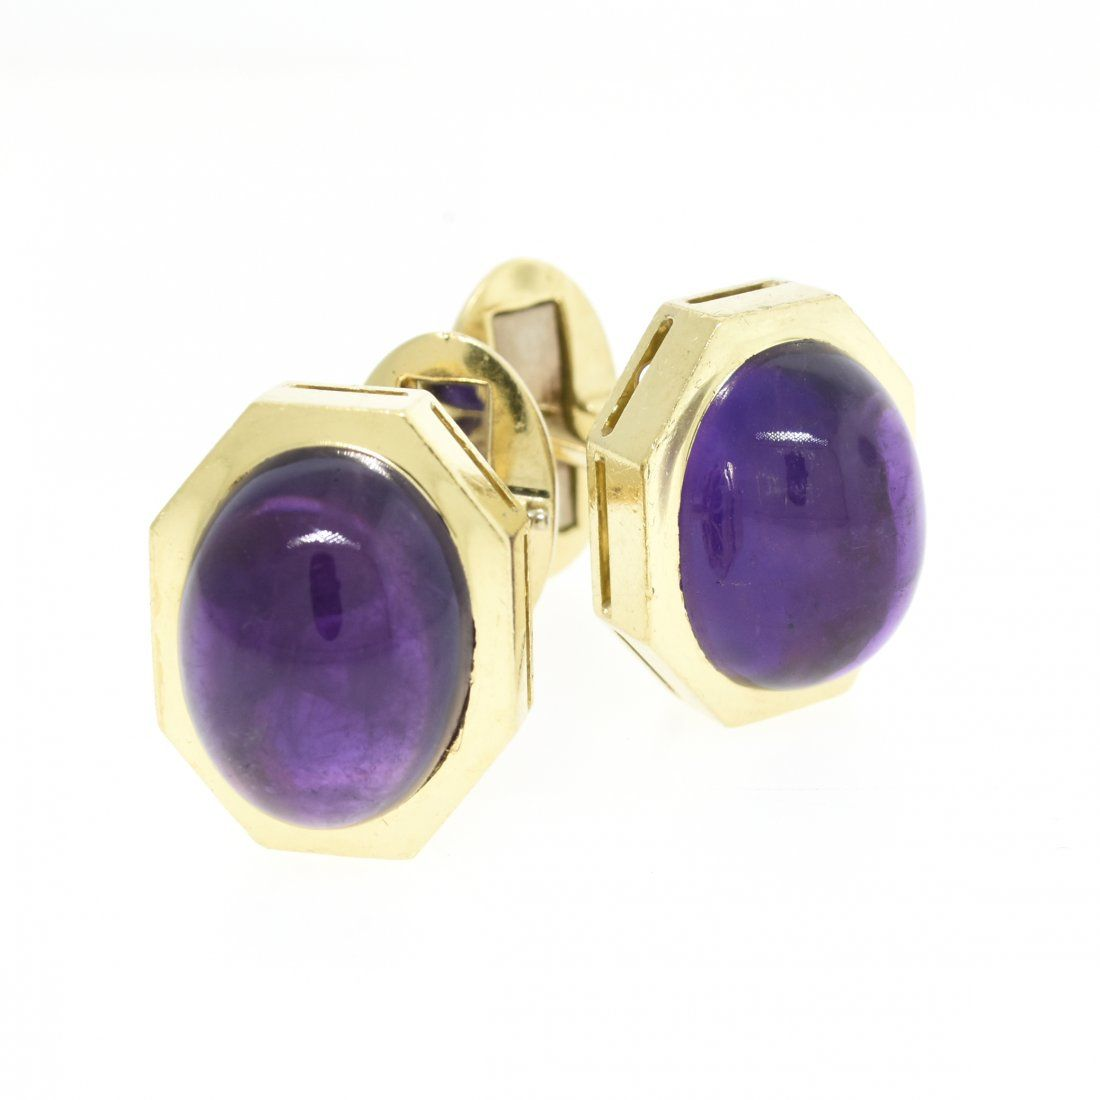 A PAIR OF 18K YELLOW GOLD AND AMETHYST HENRY DUNAY